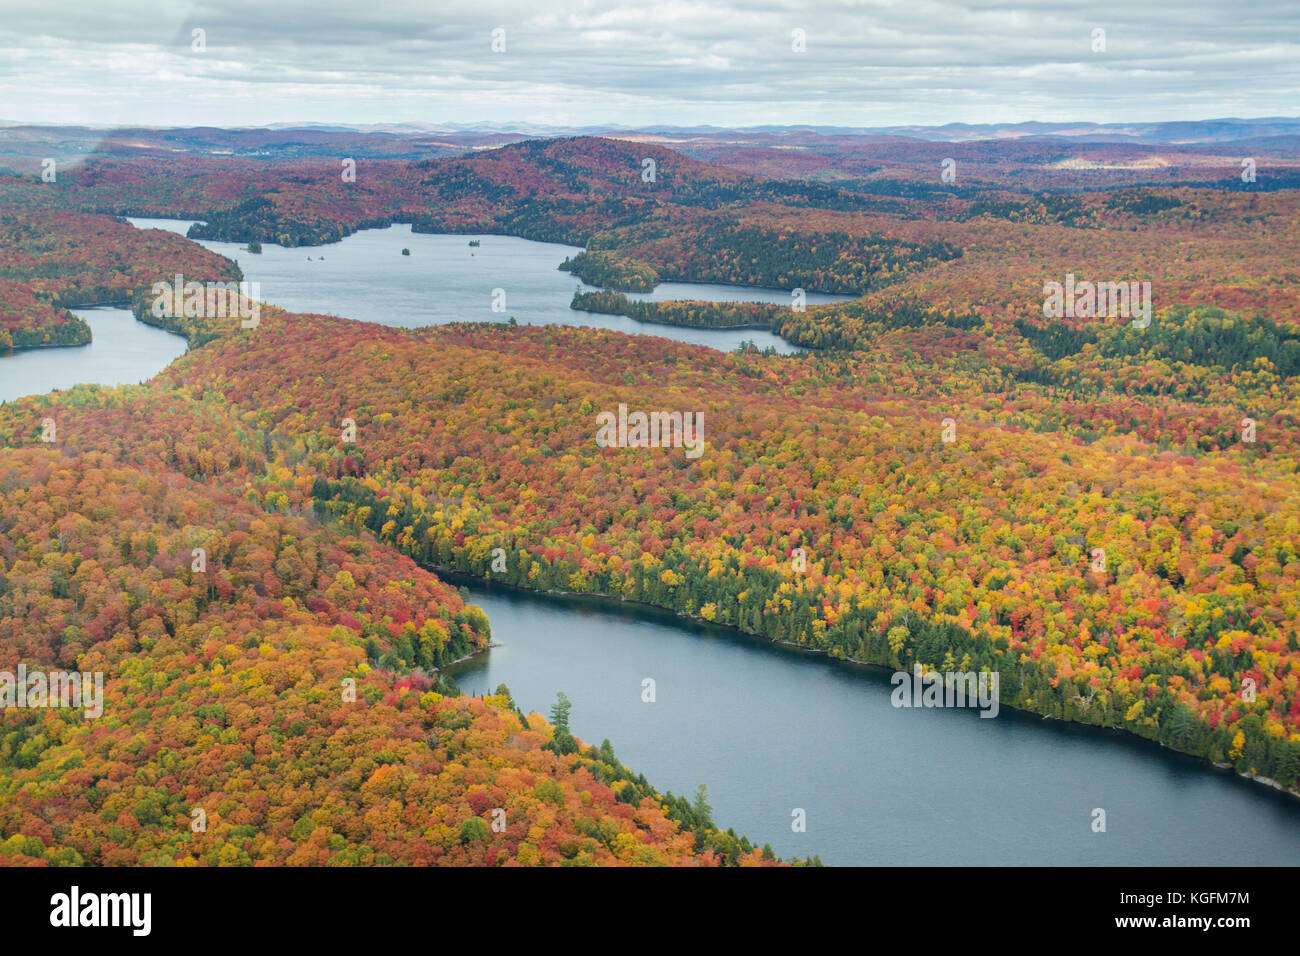 Fying over the autumn landscape at mont tremblant, Quebec,  Cananda. - Stock Image